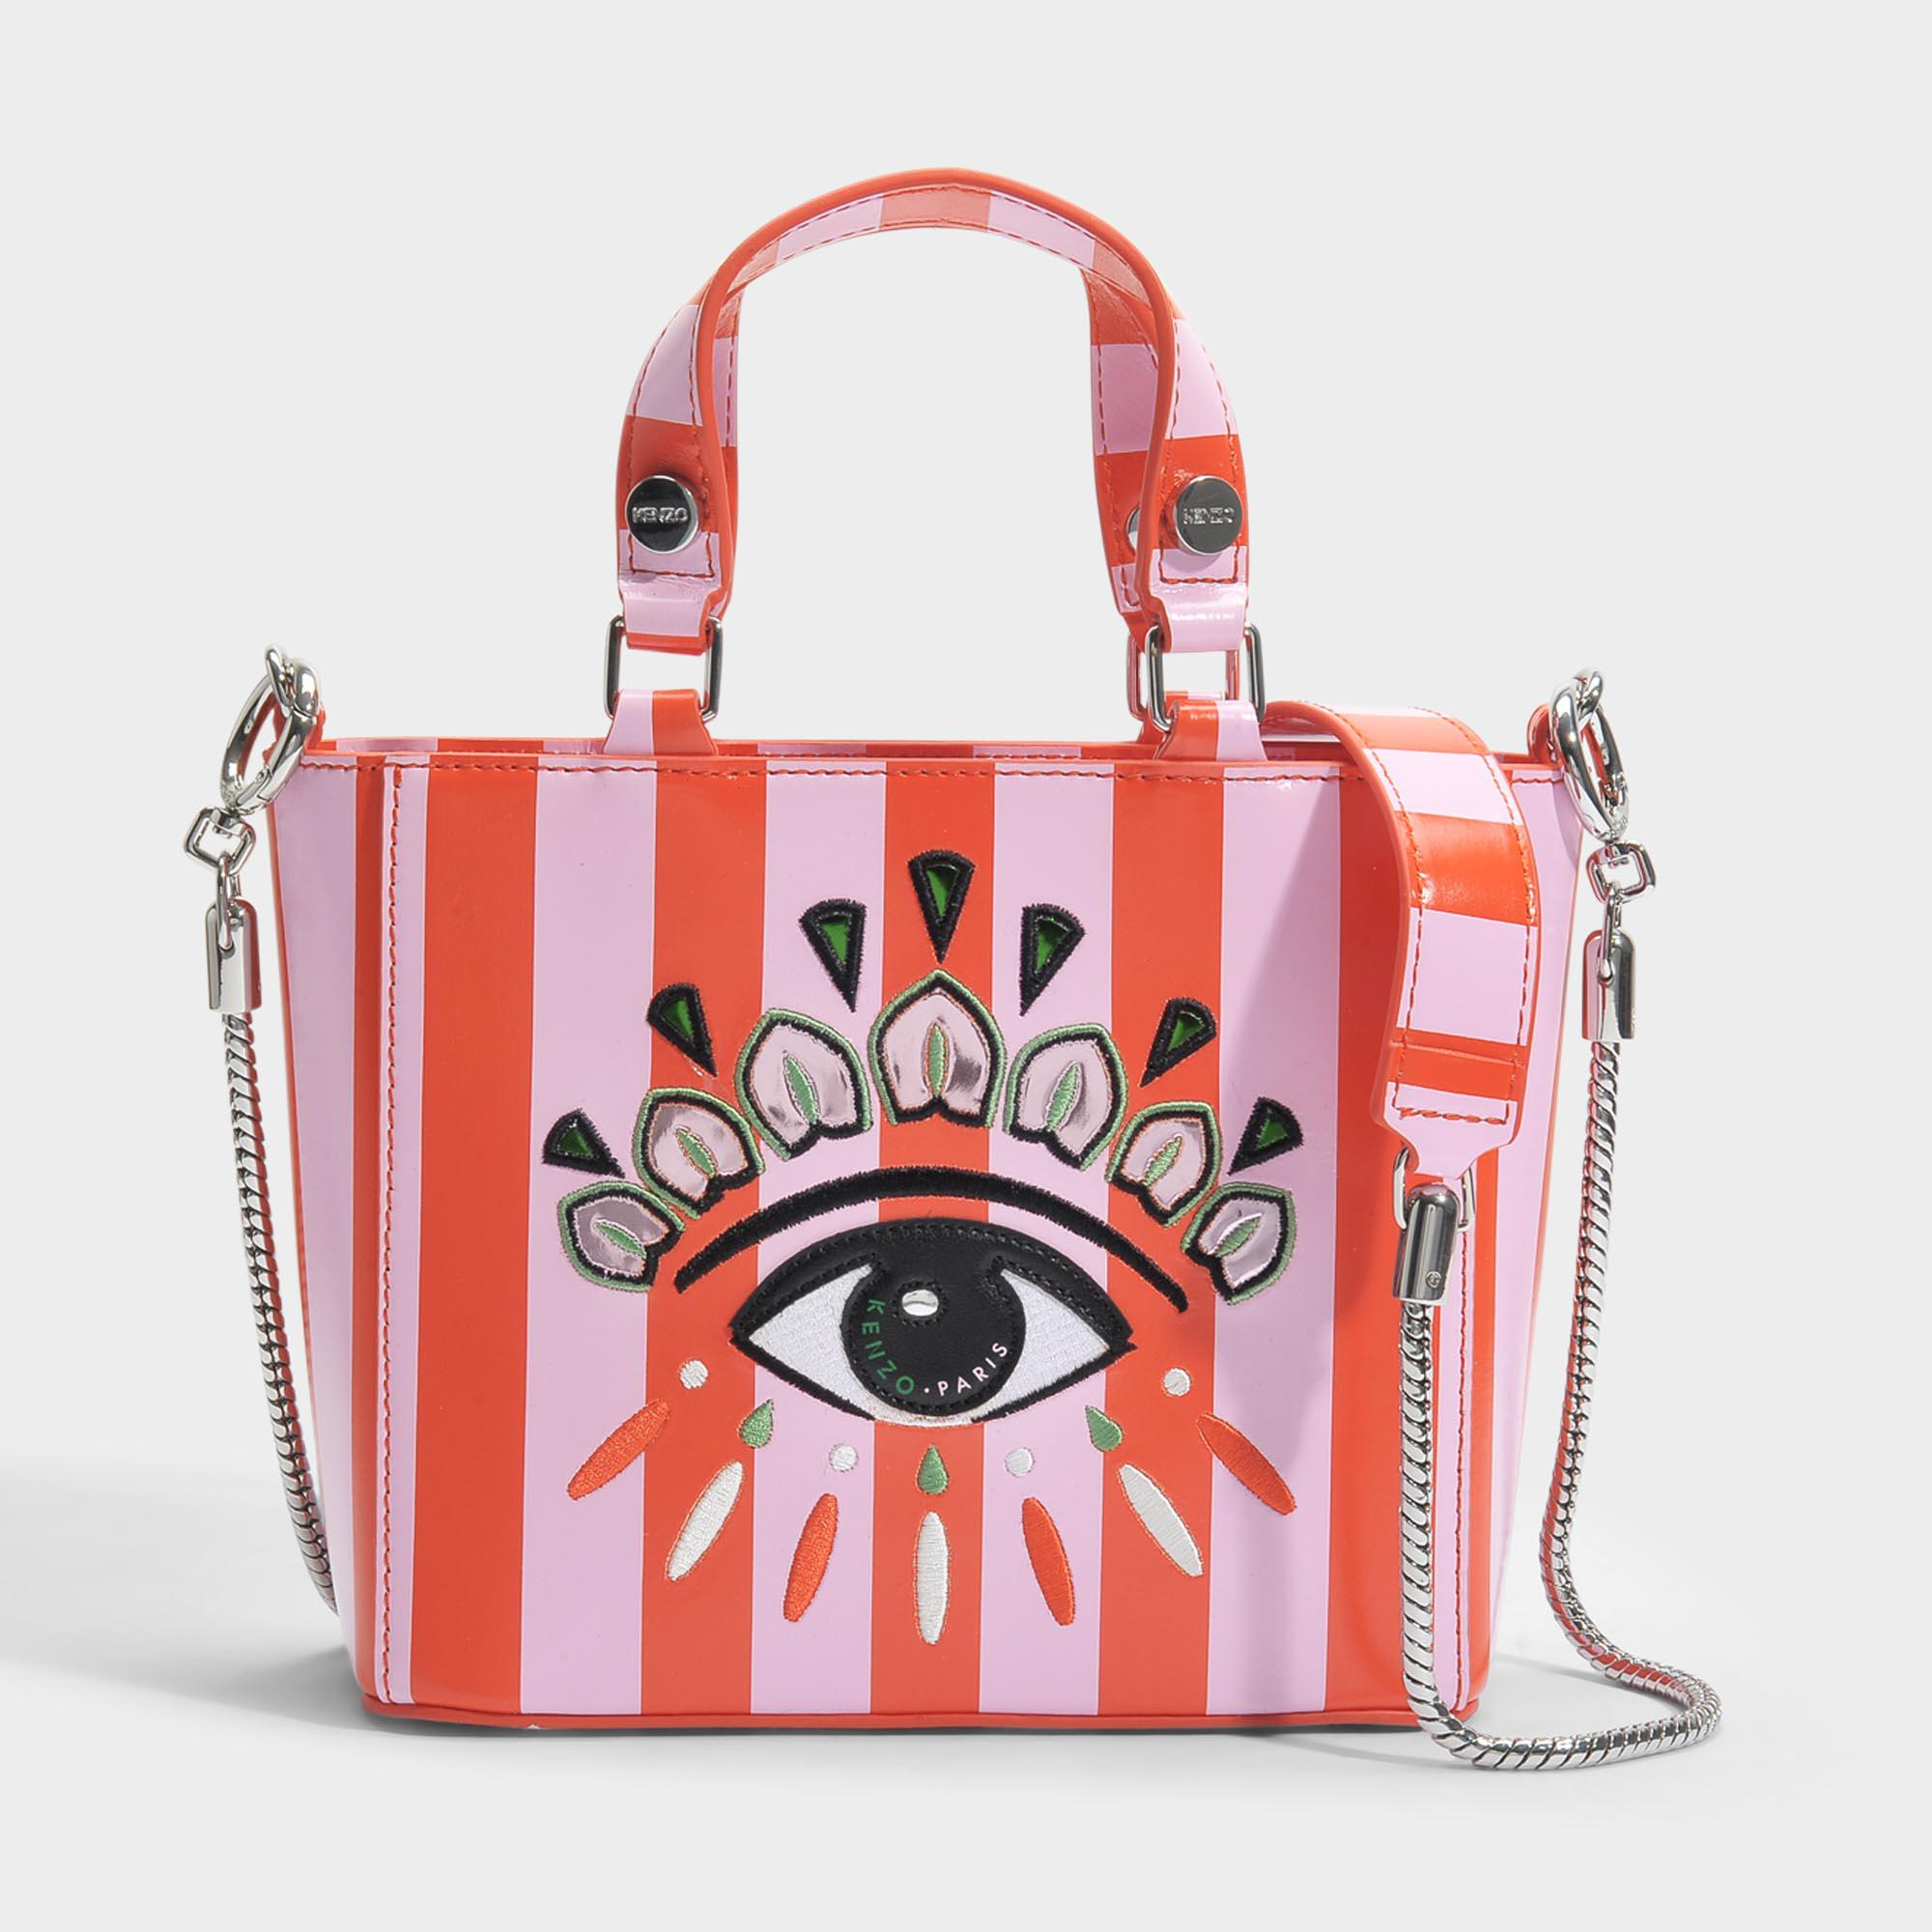 89c95877822d Lyst - KENZO Icon Top Handle Bag In Red Split Leather in Red